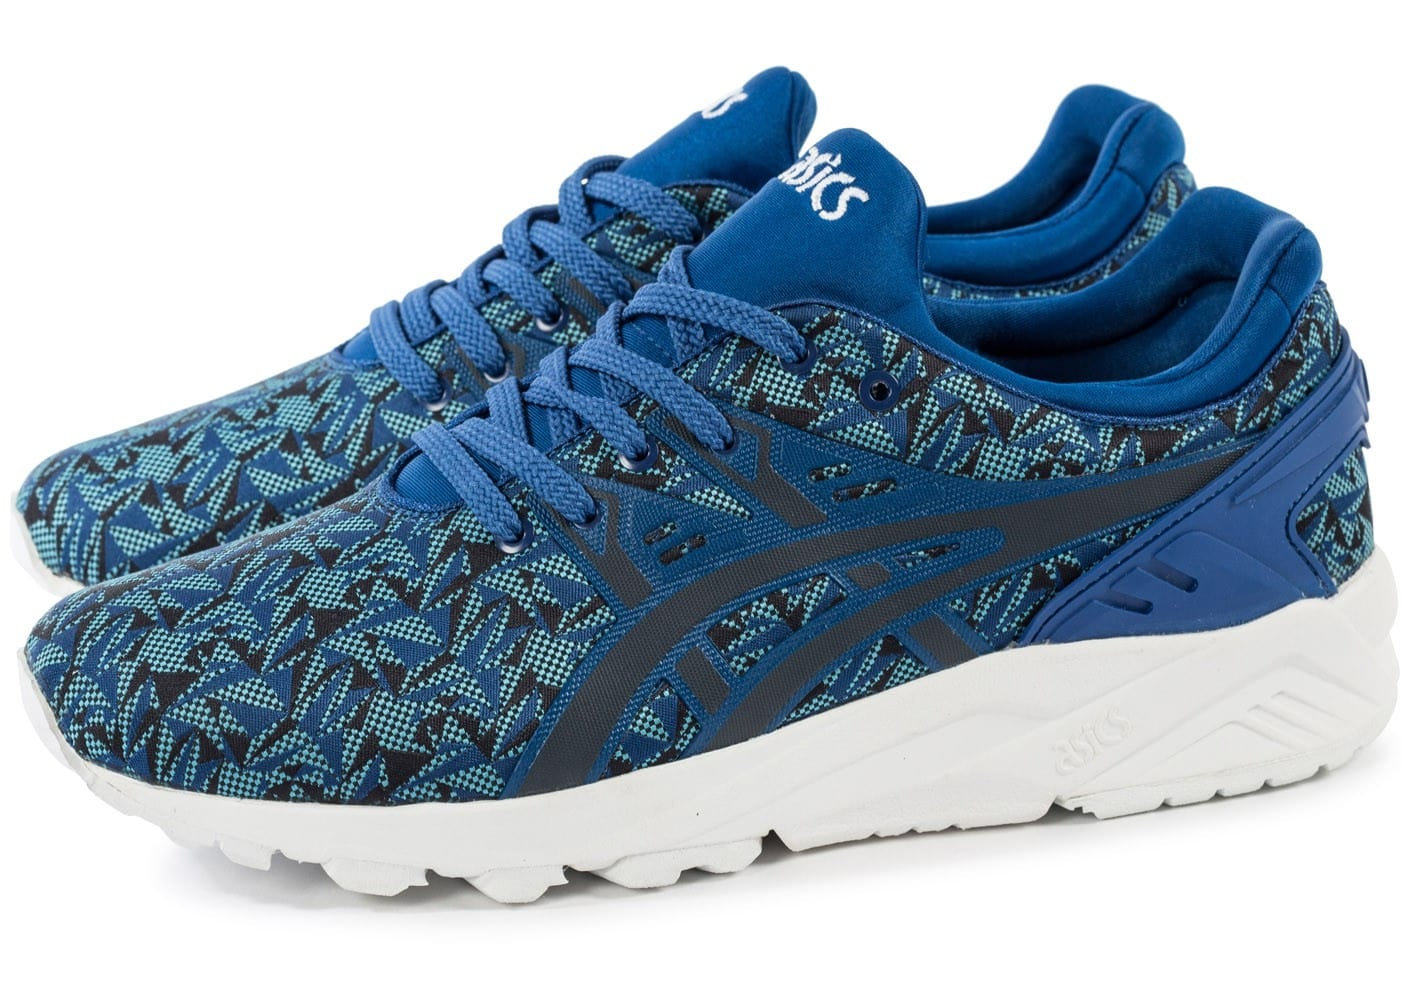 Bleue Evolution Chaussures Origami Gel Kayano Monaco Asics Trainer m80OvNnw